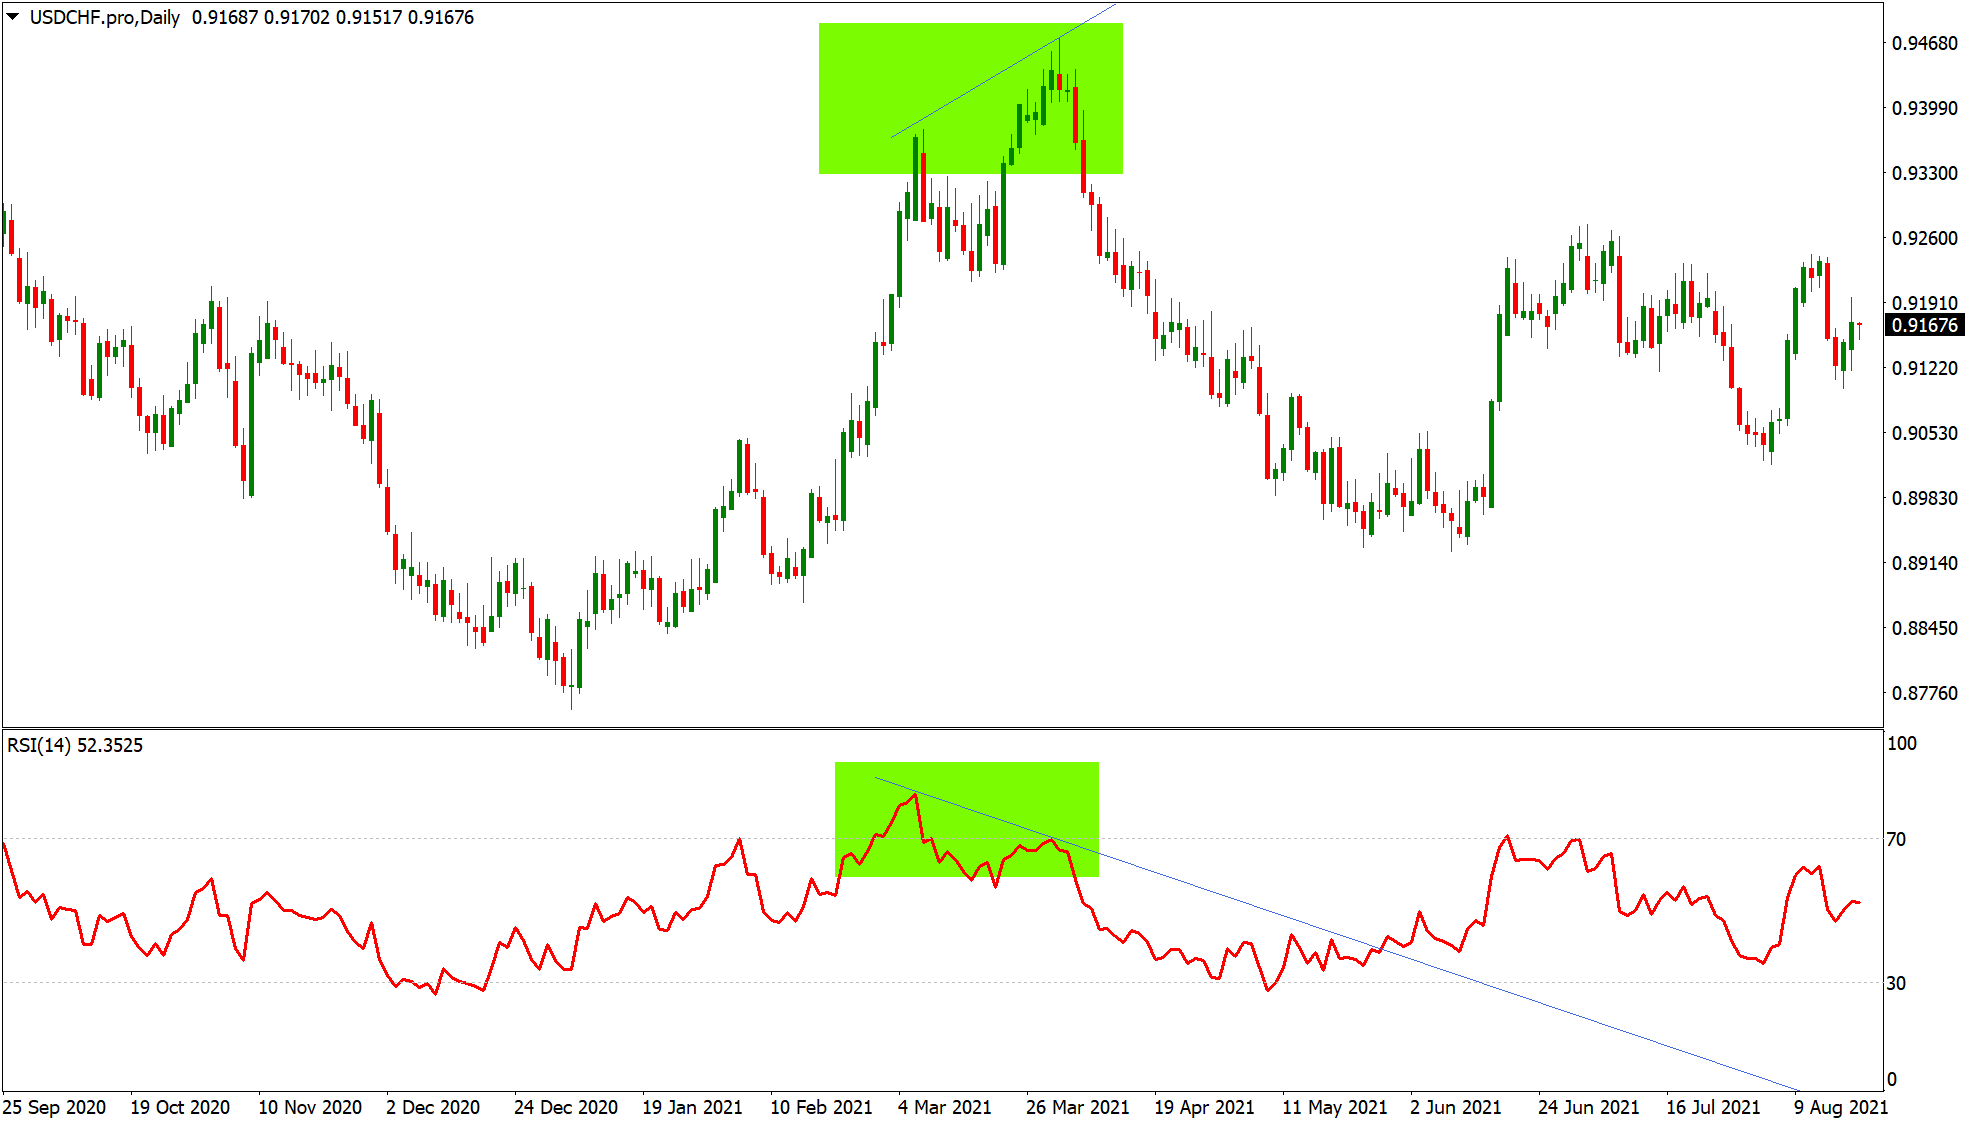 Divergence on USDCHF chart